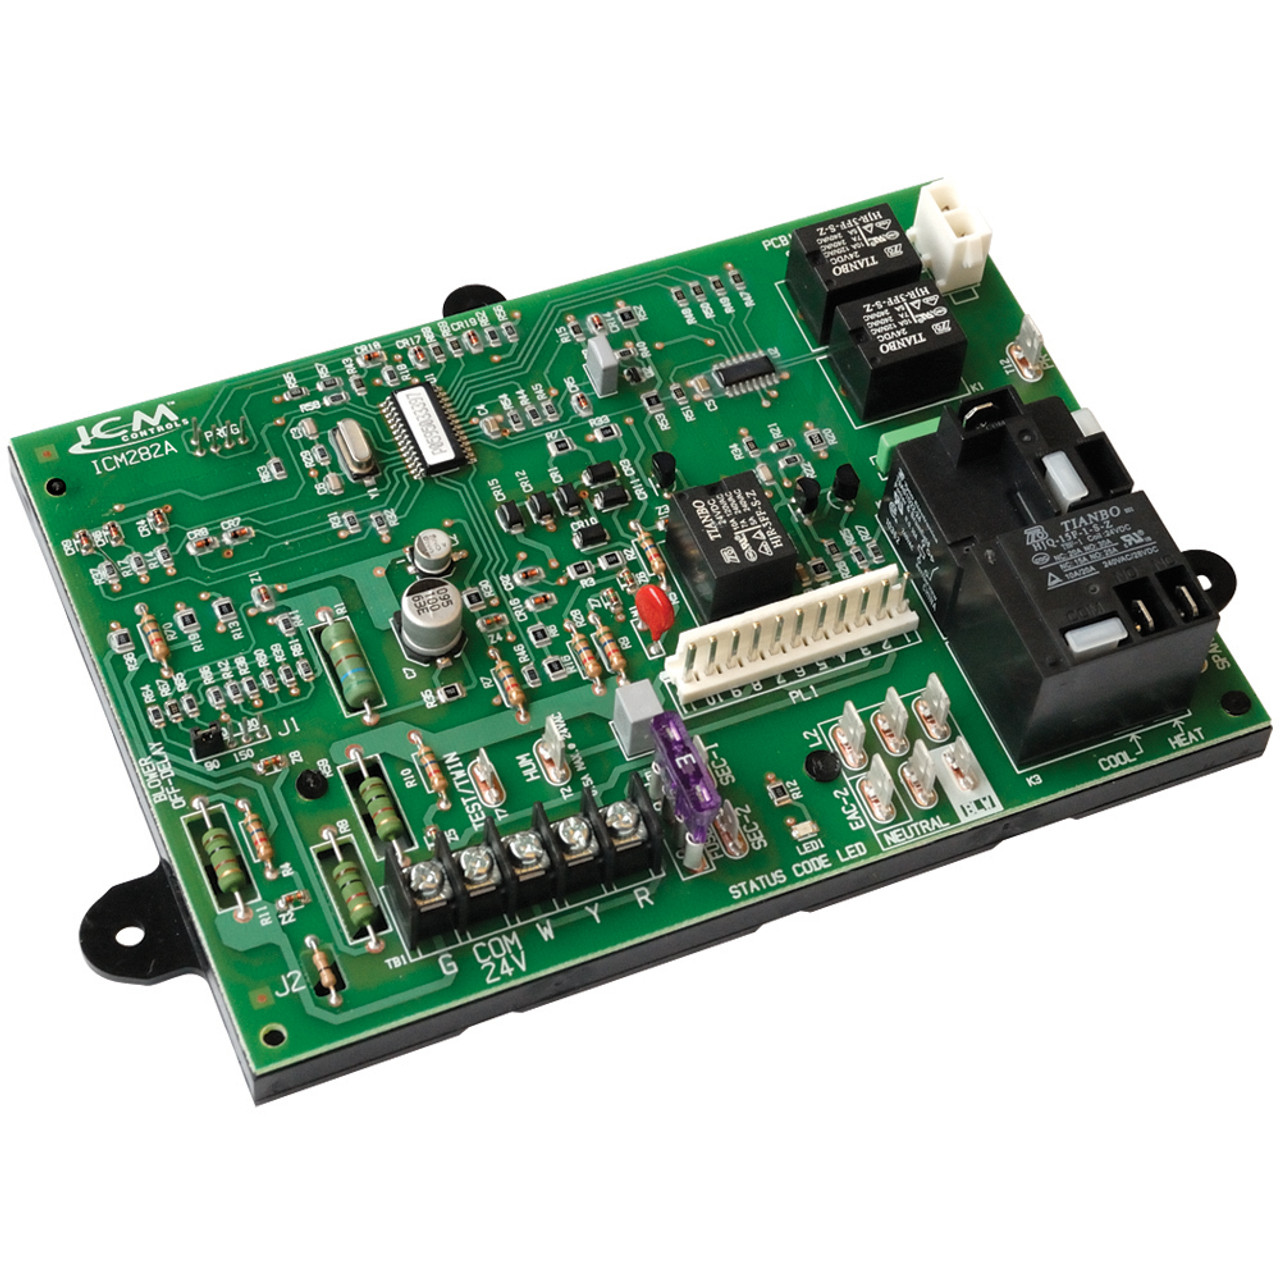 [DIAGRAM_38ZD]  Carrier Bryant Payne furnace control board ICM282A | Bryant Defrost Circuit Board Wiring Diagram |  | AC Unit Parts